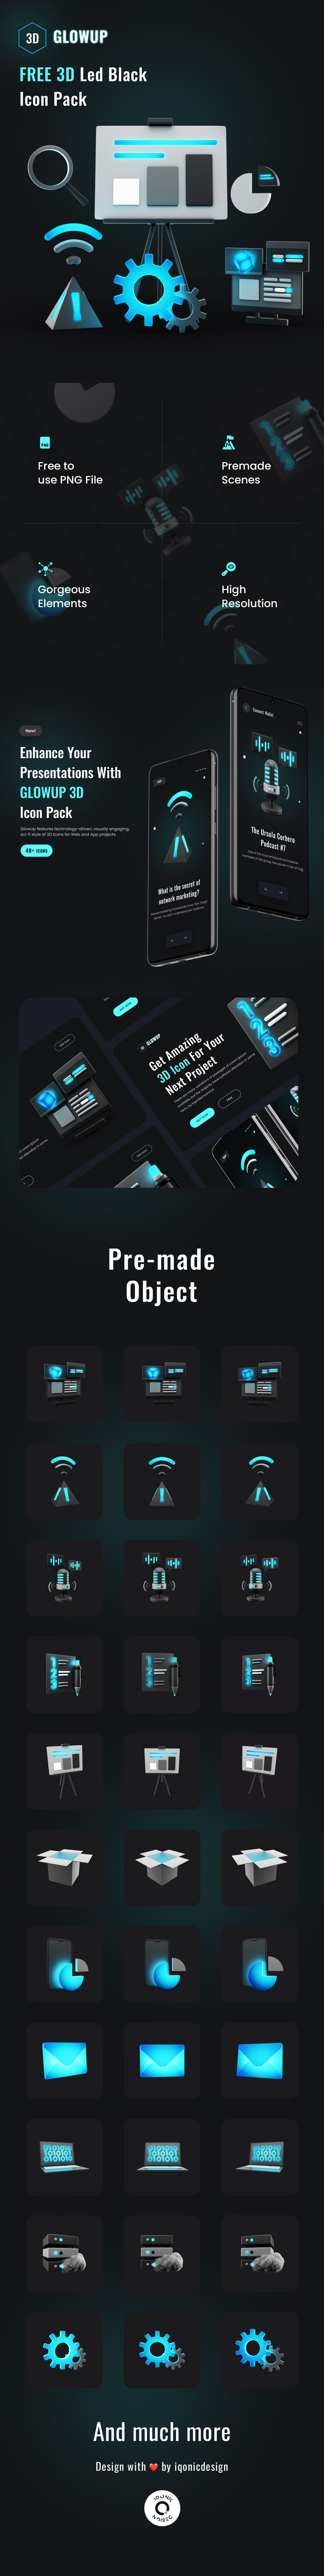 Best Free 3D Icon LED-Dark Technology Pack   GlowUp   Iqonic Design best free 3d icon led-dark technology pack GlowUp 3D long preview Recovered min